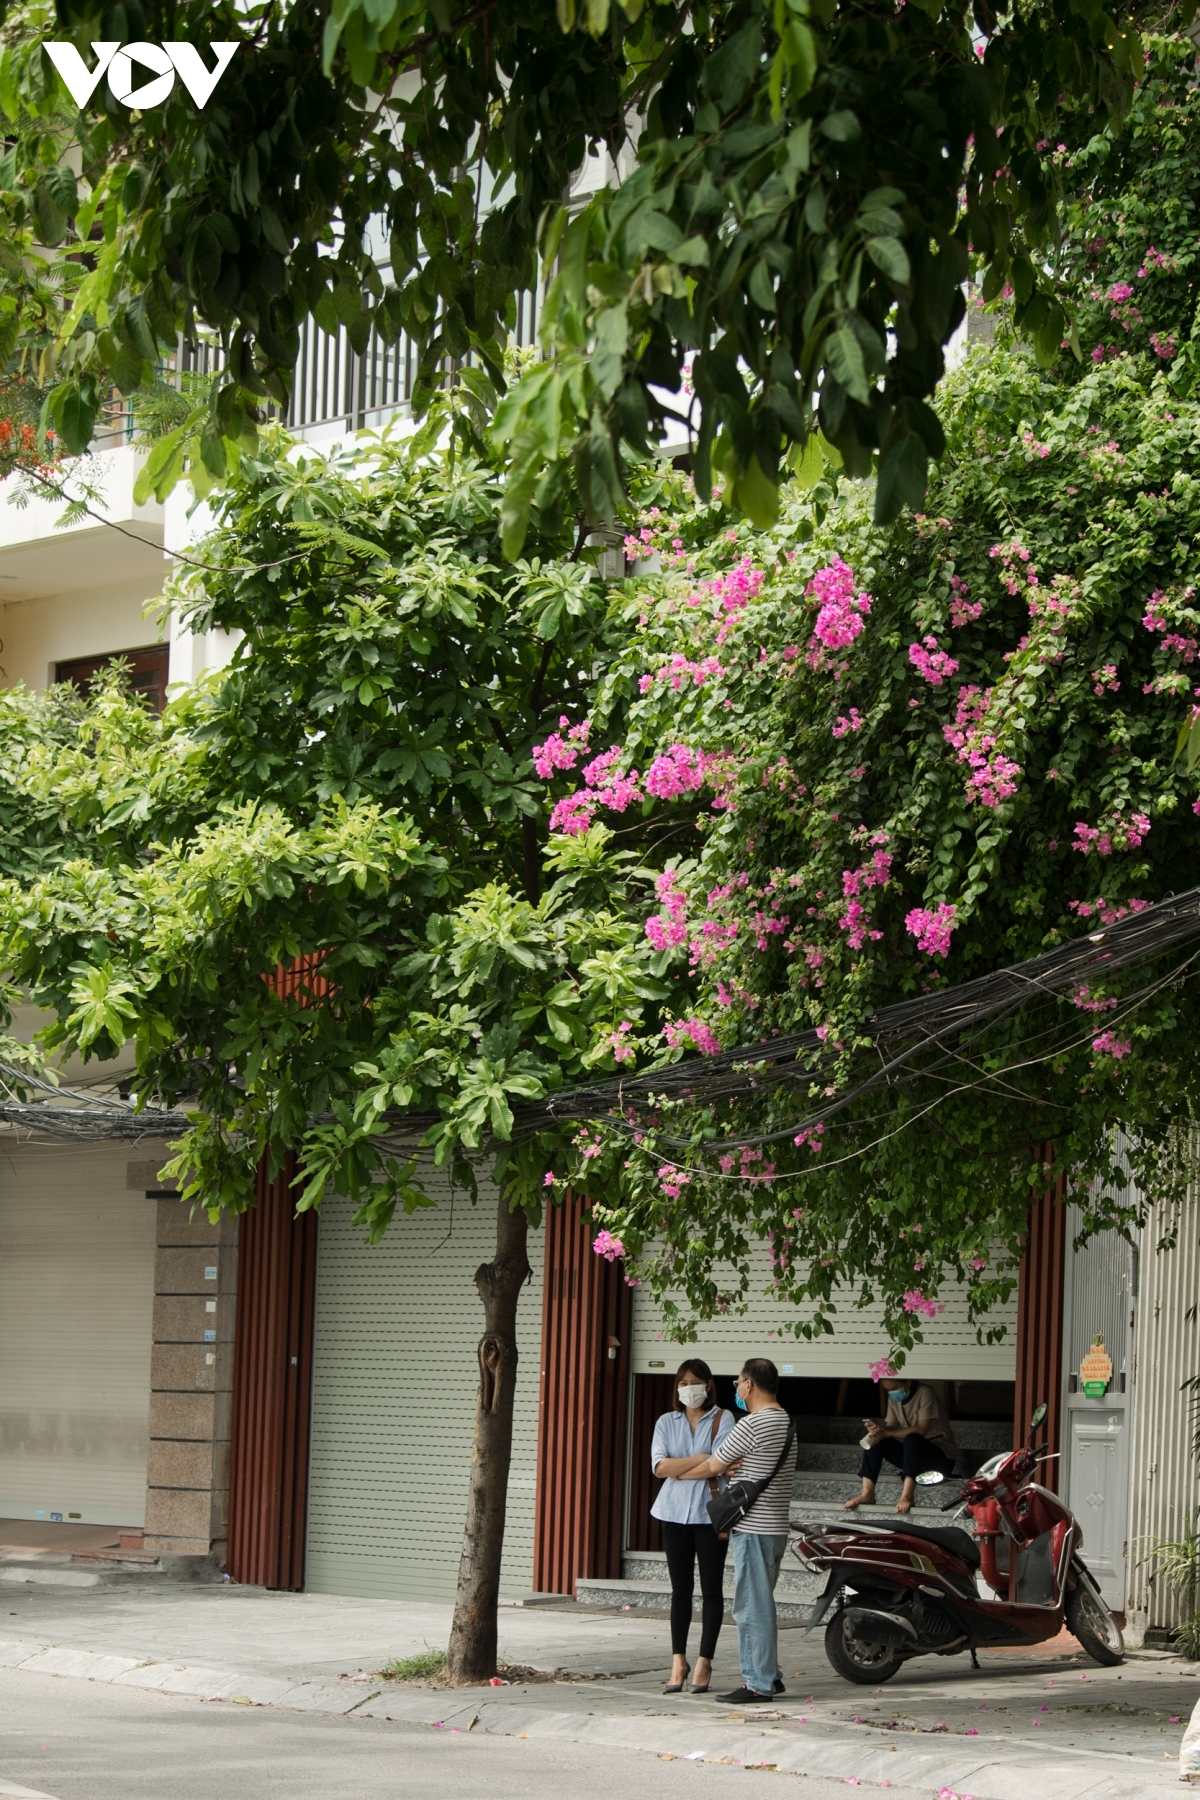 Scenes featuring pink blossoms serve to bring an impression of peace and romance to Hanoi.